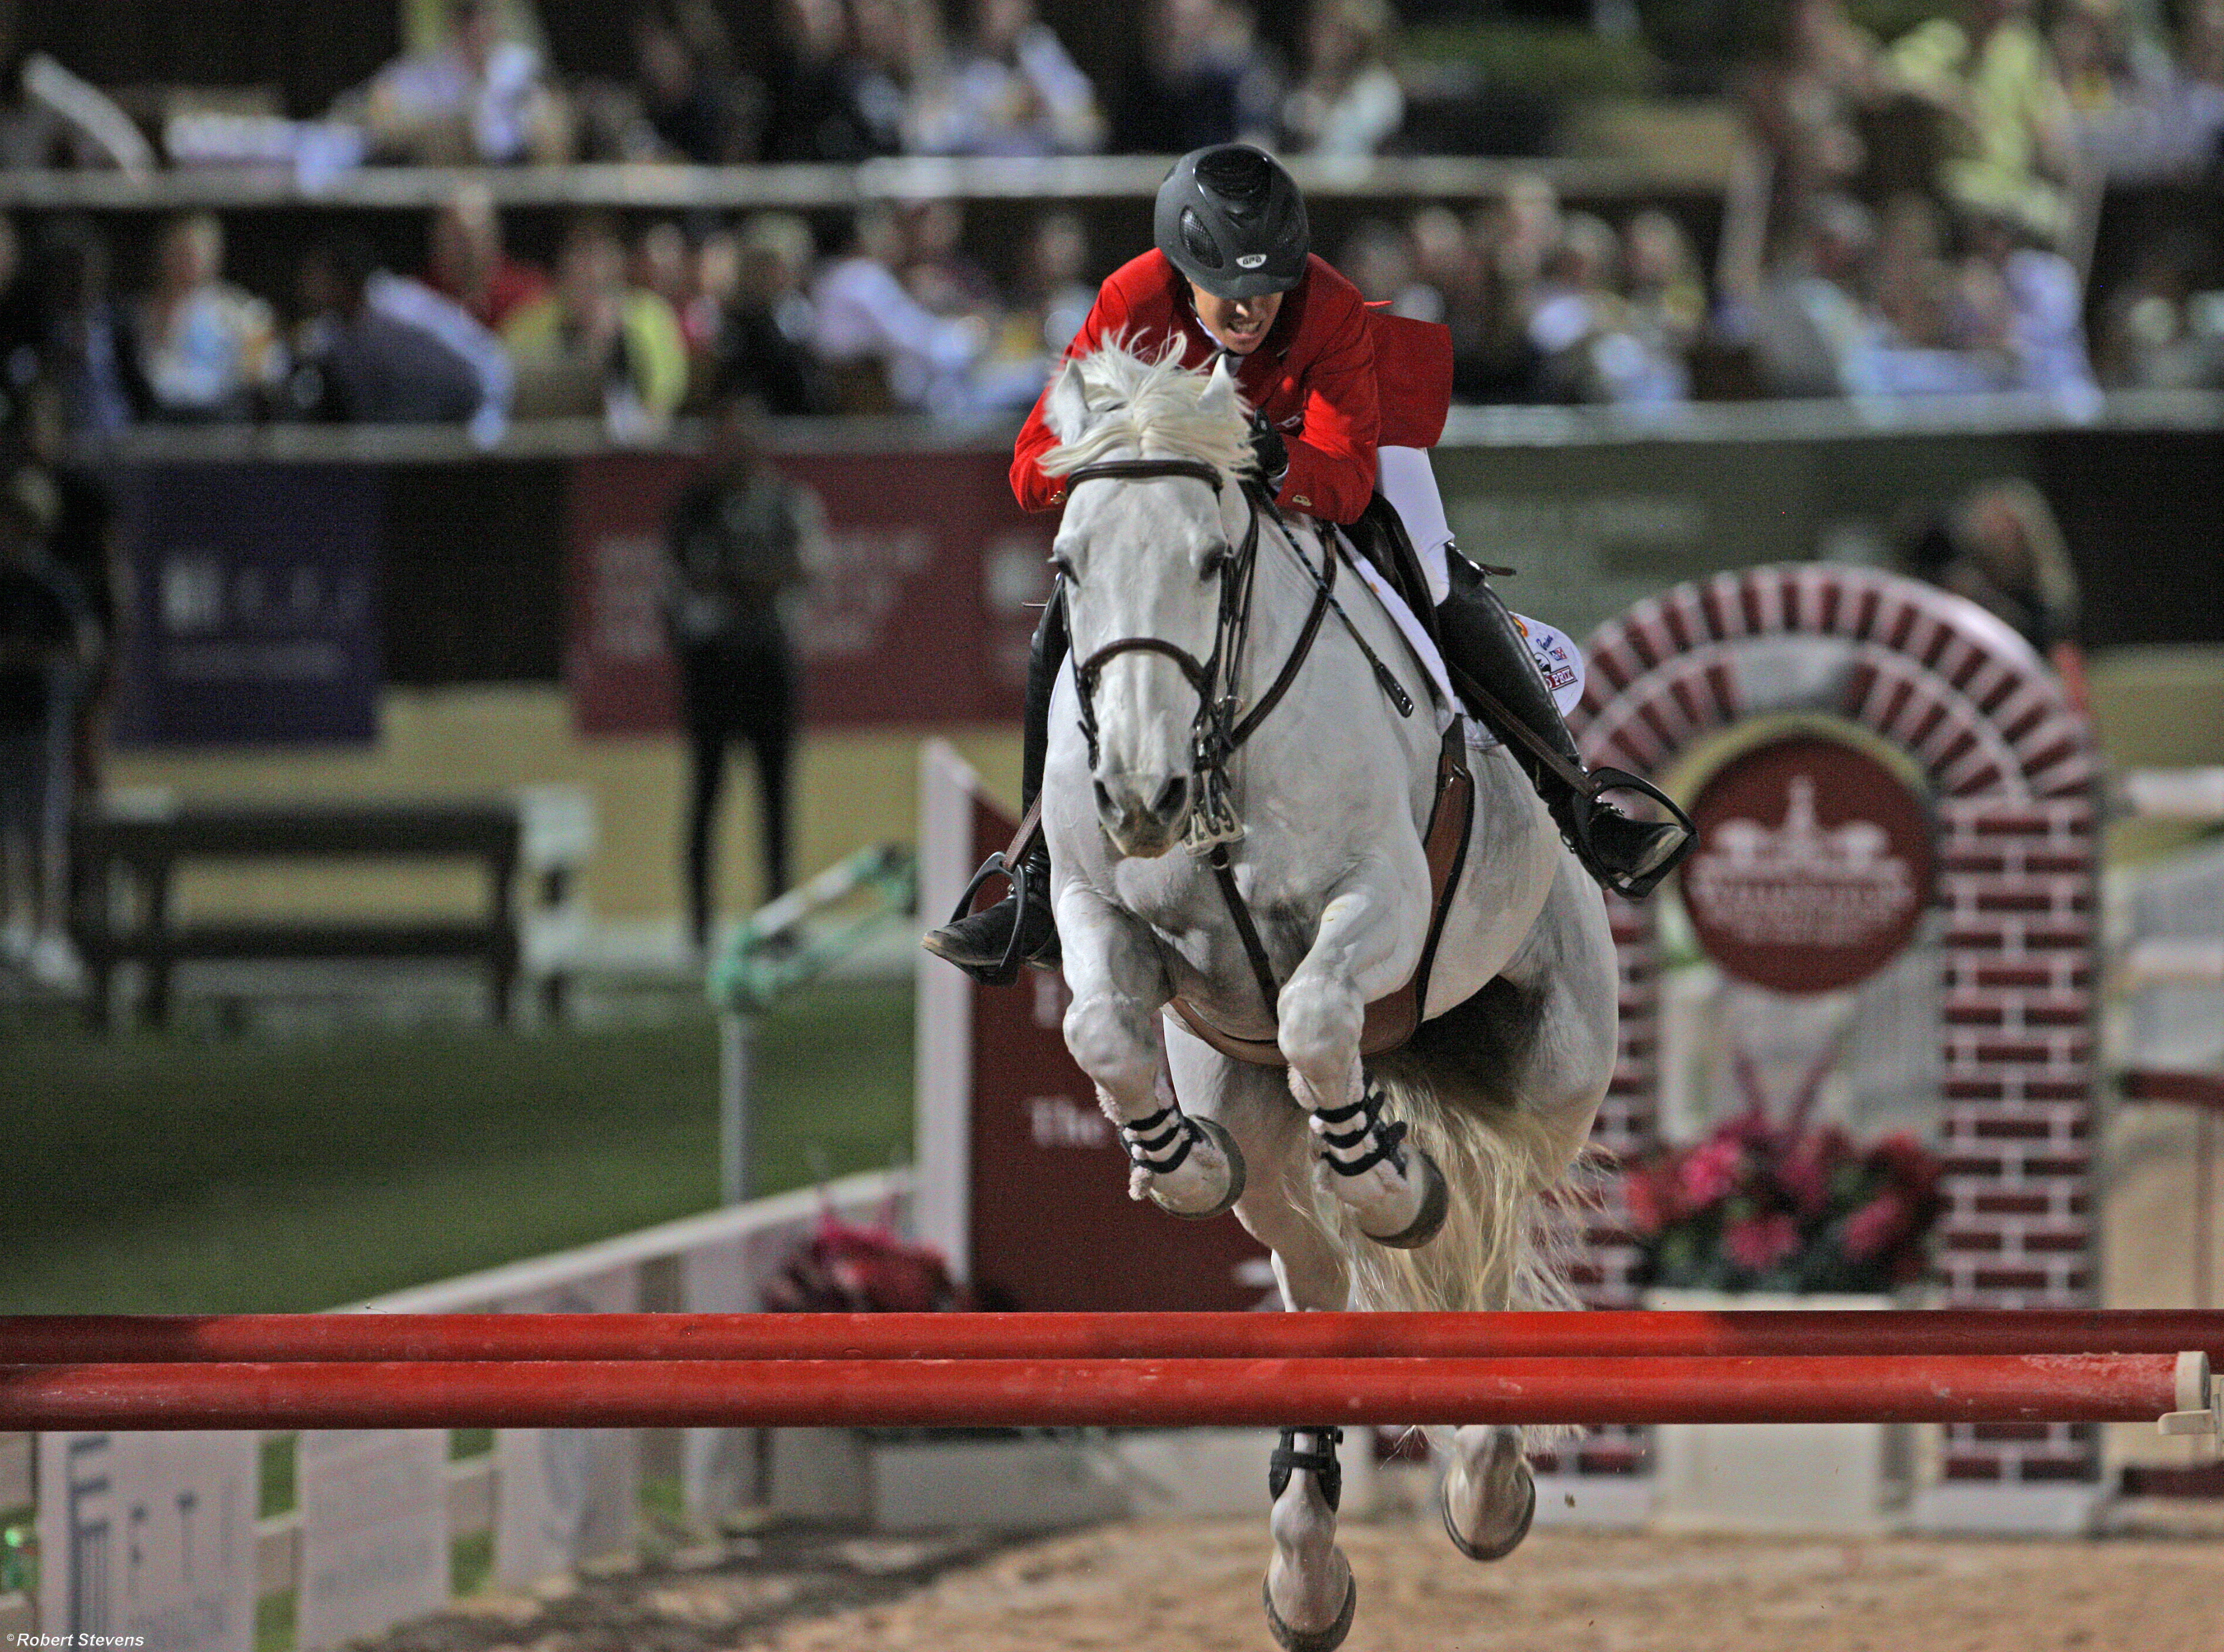 White horse with rider jumps obstacle in equestrian competition